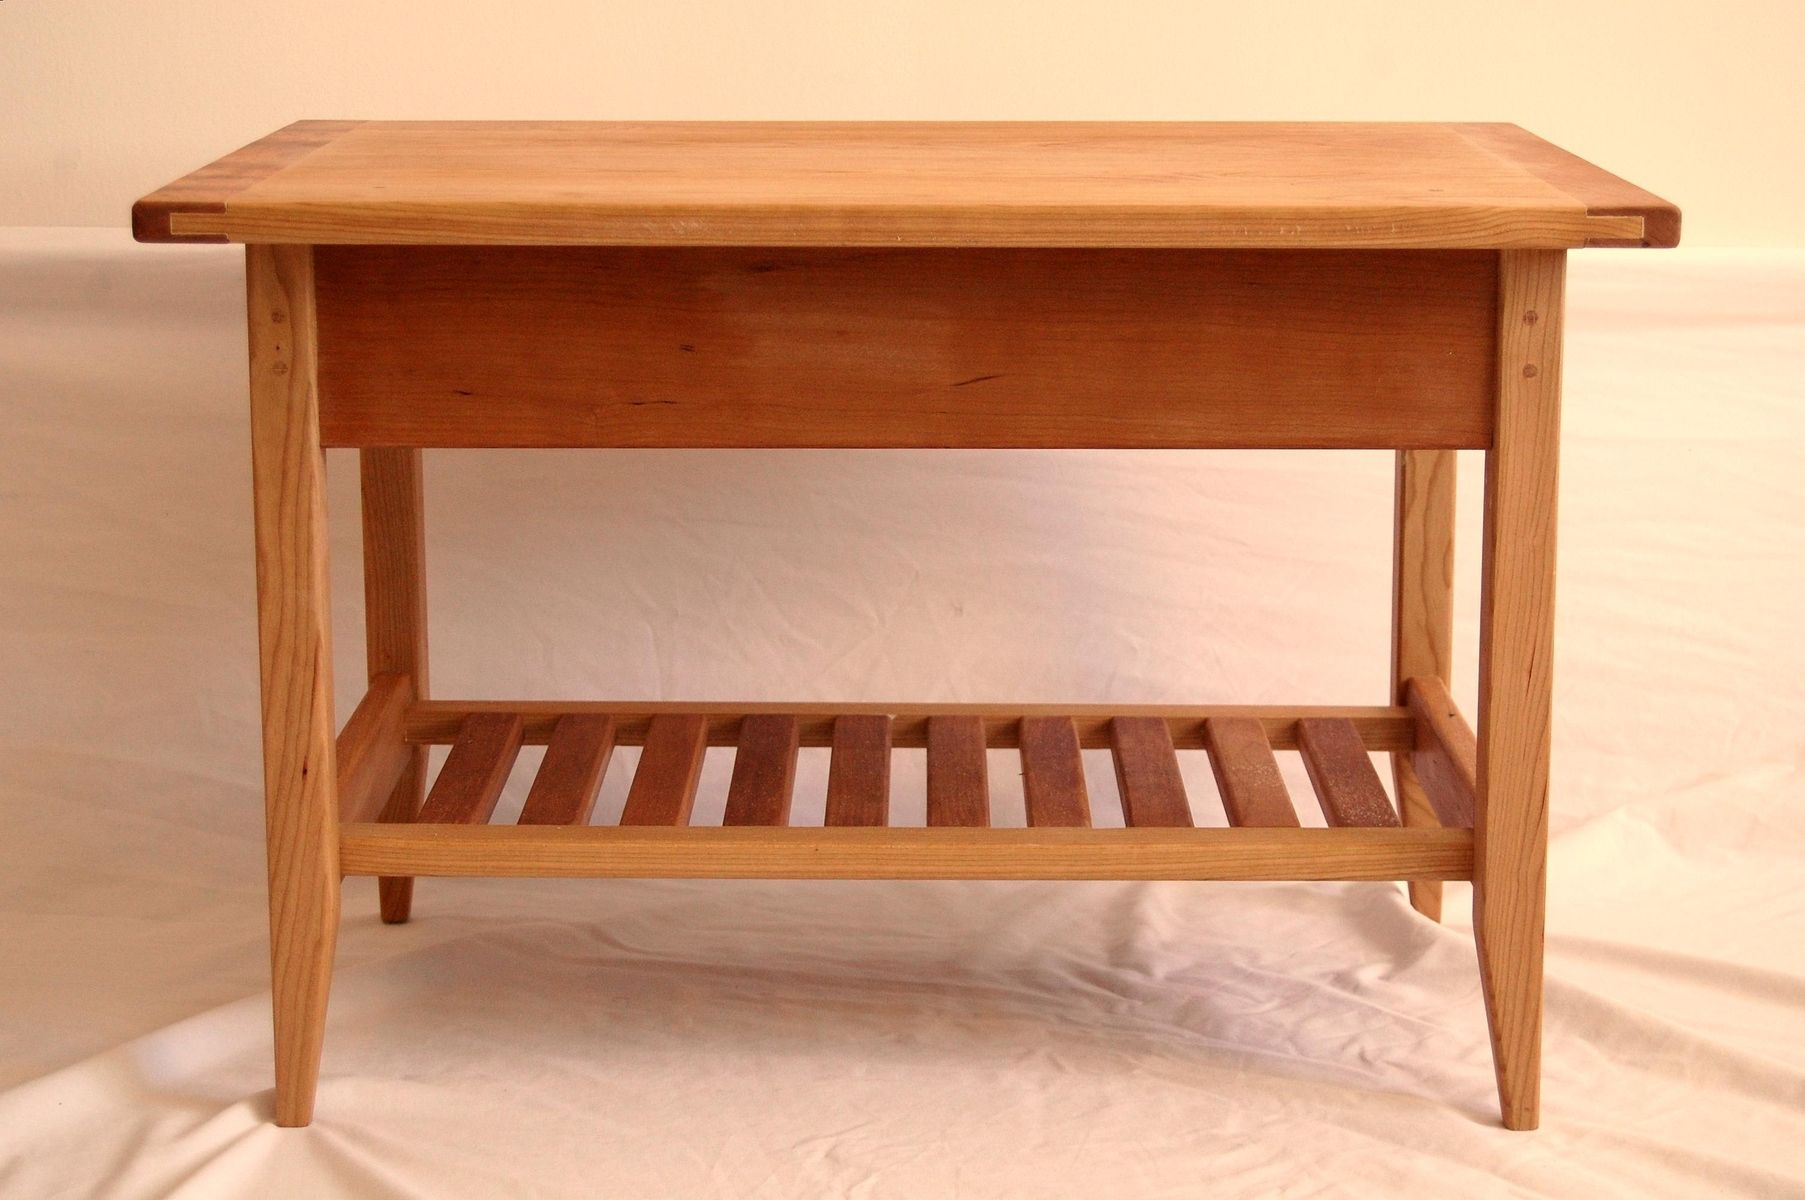 Buy A Custom Cherry Shaker Style Coffee Table With Drawer And Shelf Made To Order From Mountain